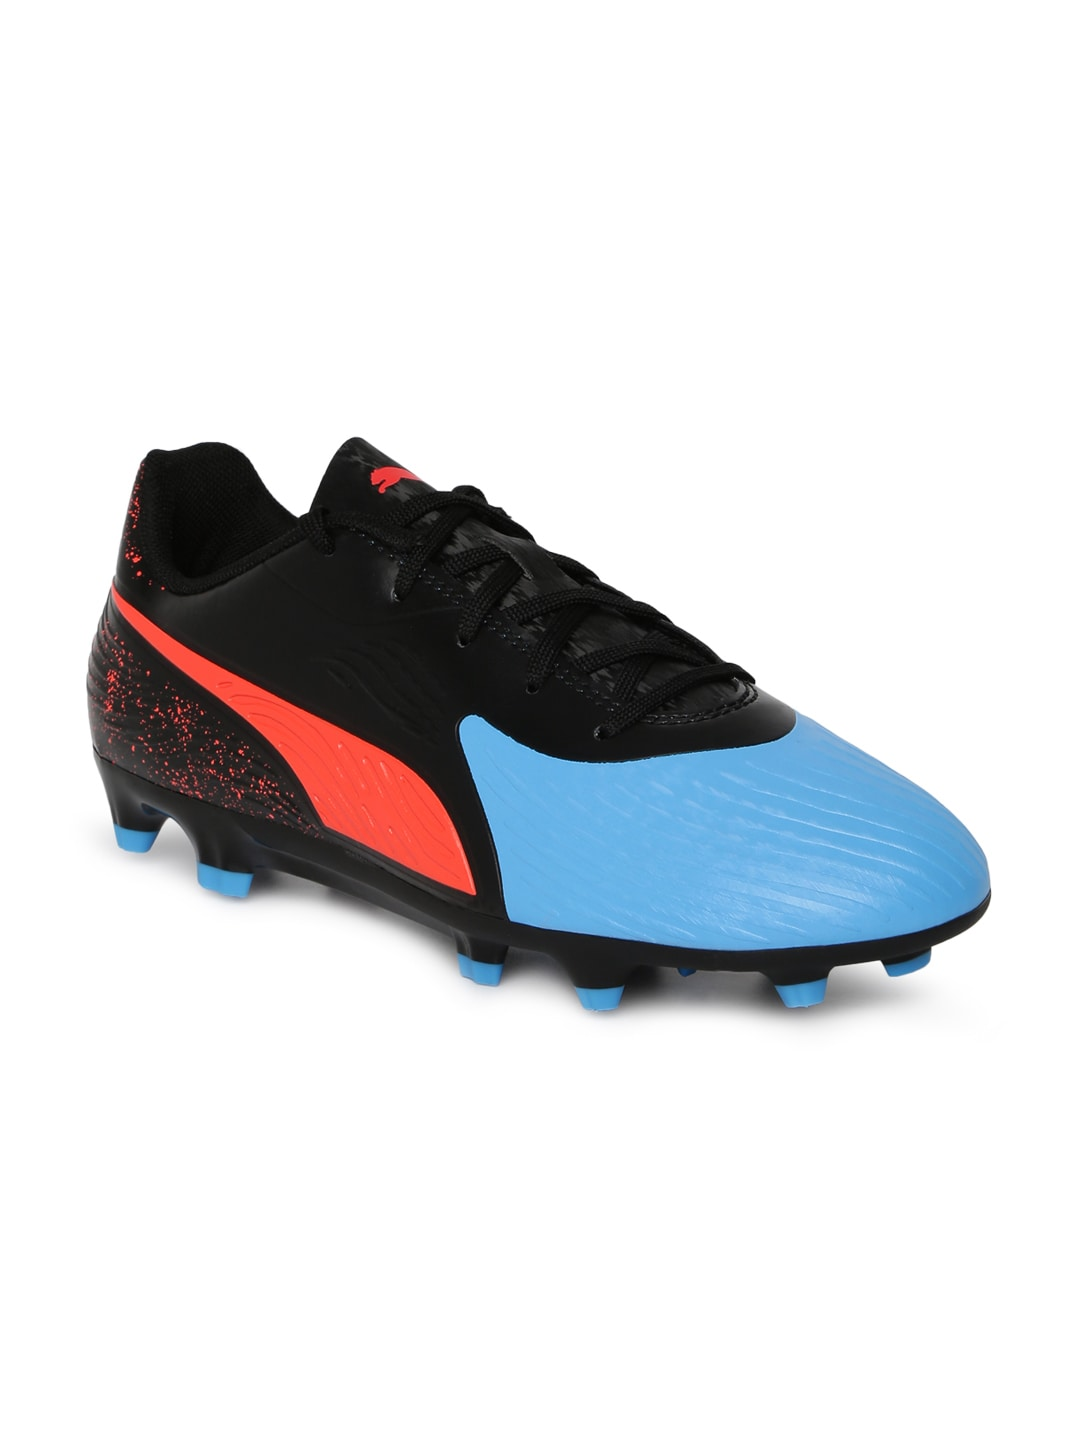 23451c811fa Football Shoes - Buy Football Studs Online for Men   Women in India